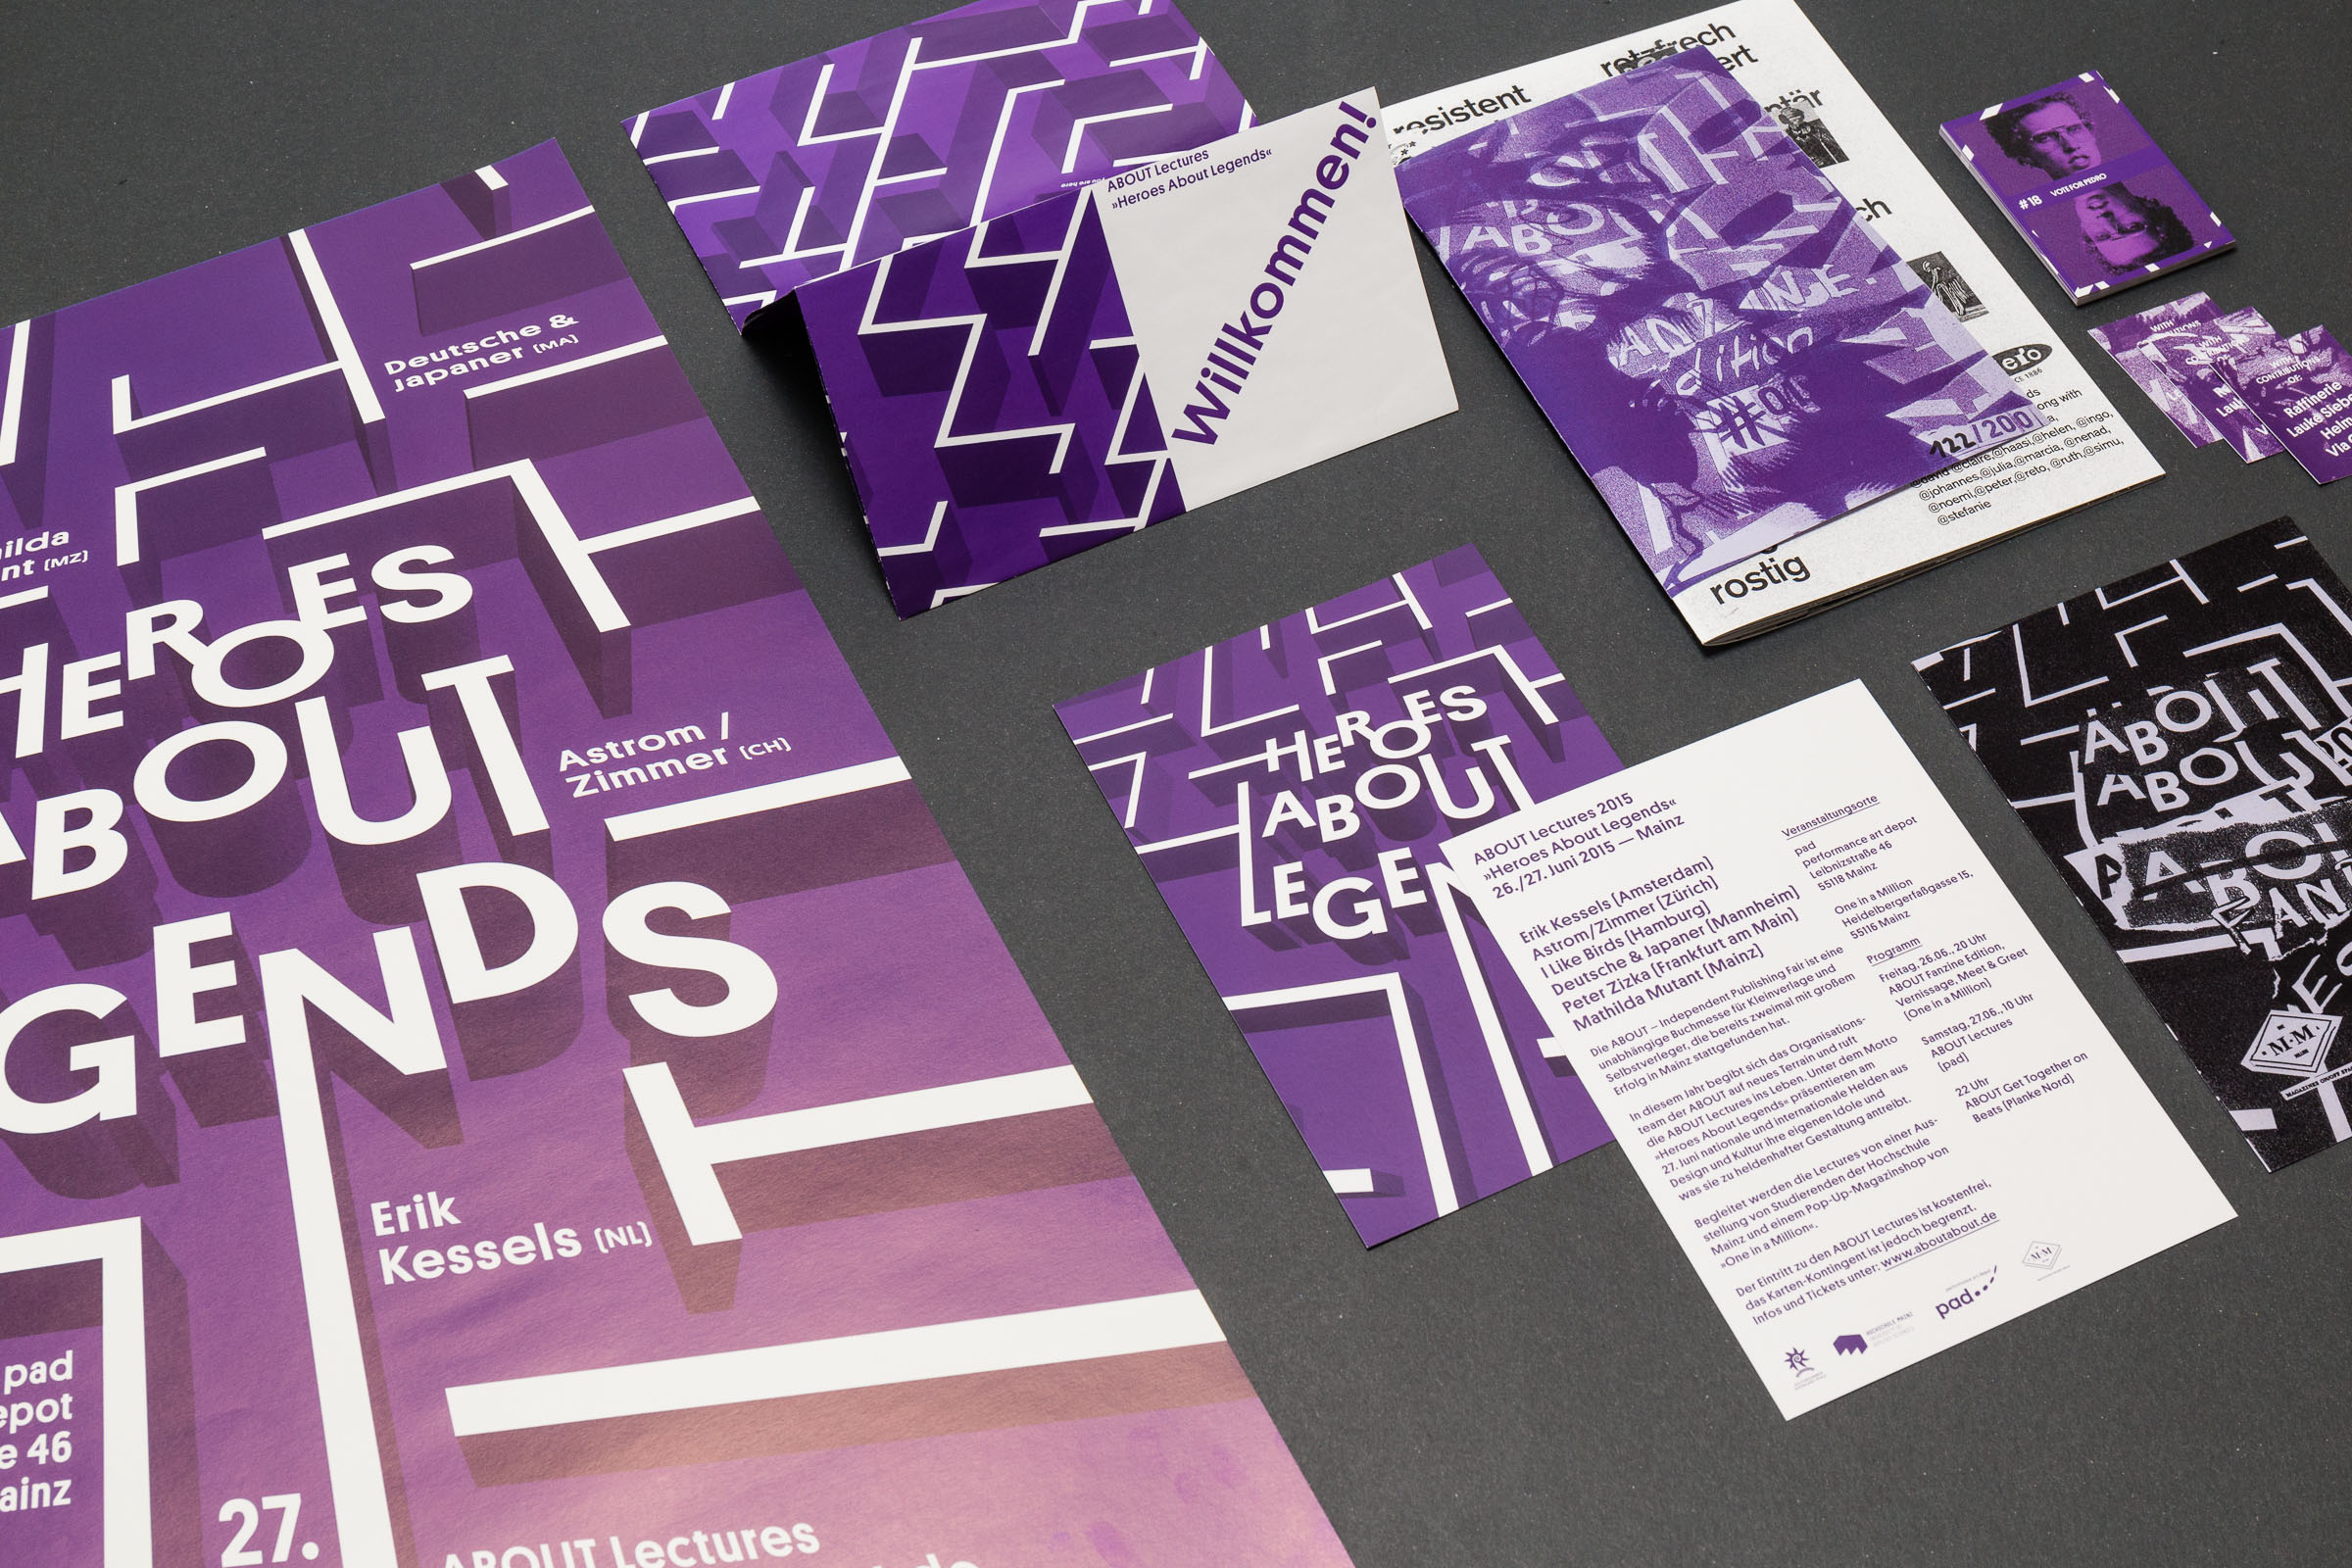 Corporate Design Übersicht der Druckprodukte der ABOUT – Independent Publishing Fair Mainz Heroes About Legends 2015 © Christian Weber – Büro für Gestaltung und Kommunikation